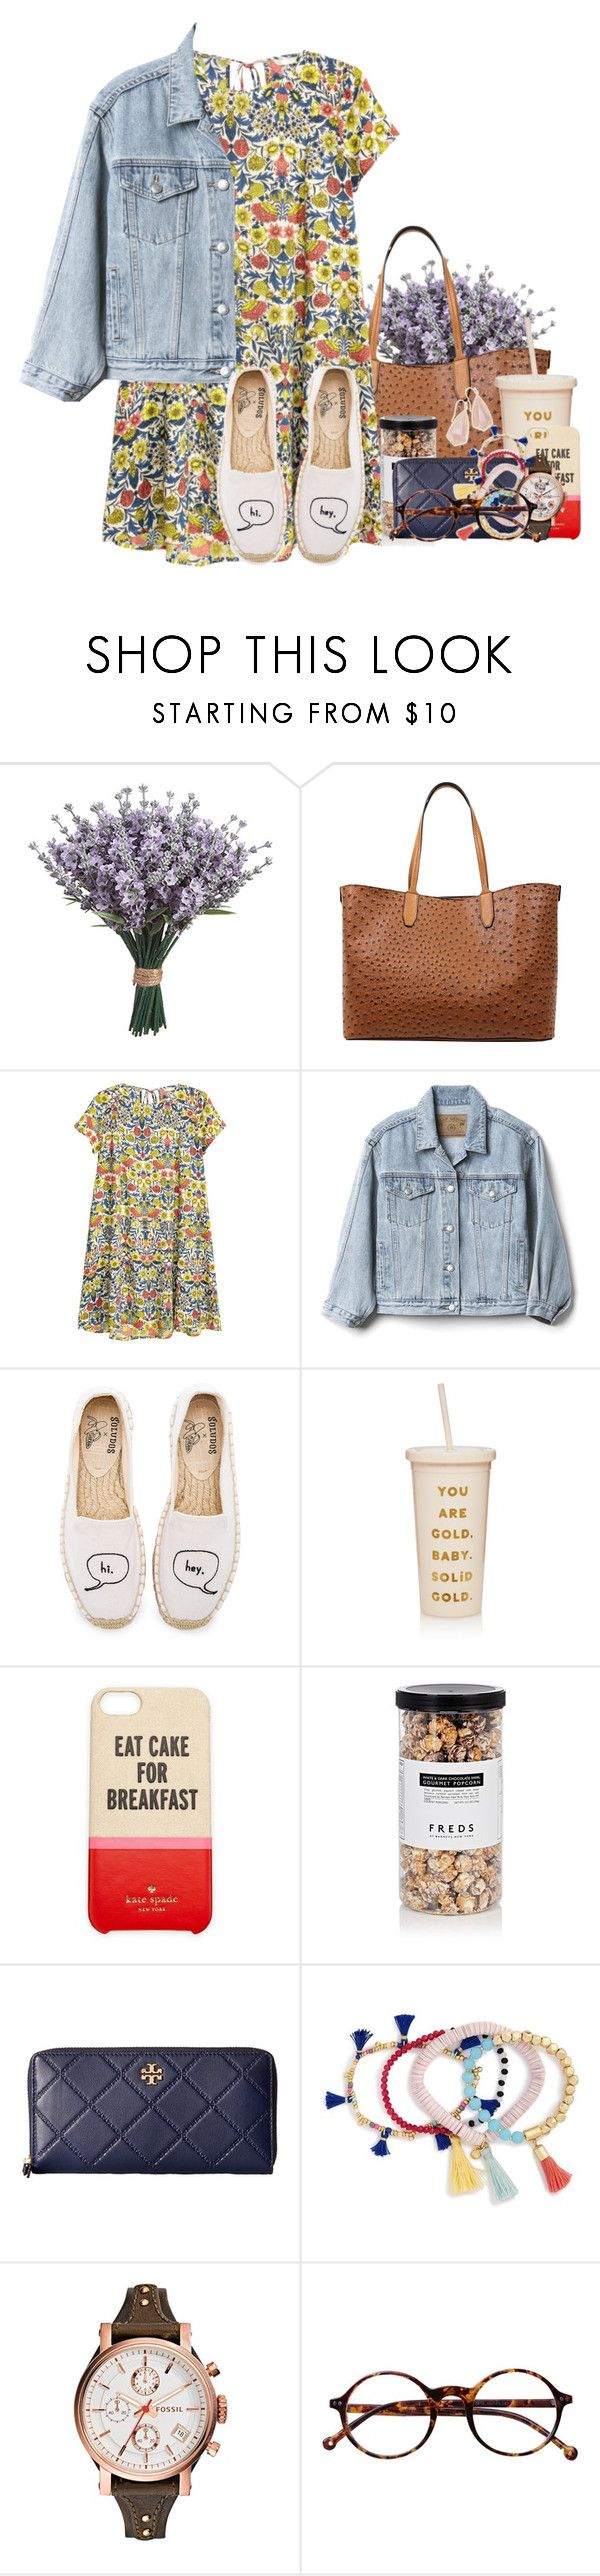 """""""I hate it how Hobby Lobby has christmas stuff in August"""" by flroasburn ❤ liked on Polyvore featuring Emilie M, H&M, Gap, Soludos, ban.do, Kate Spade, FREDS at Barneys New York, Tory Burch, BaubleBar and FOSSIL"""